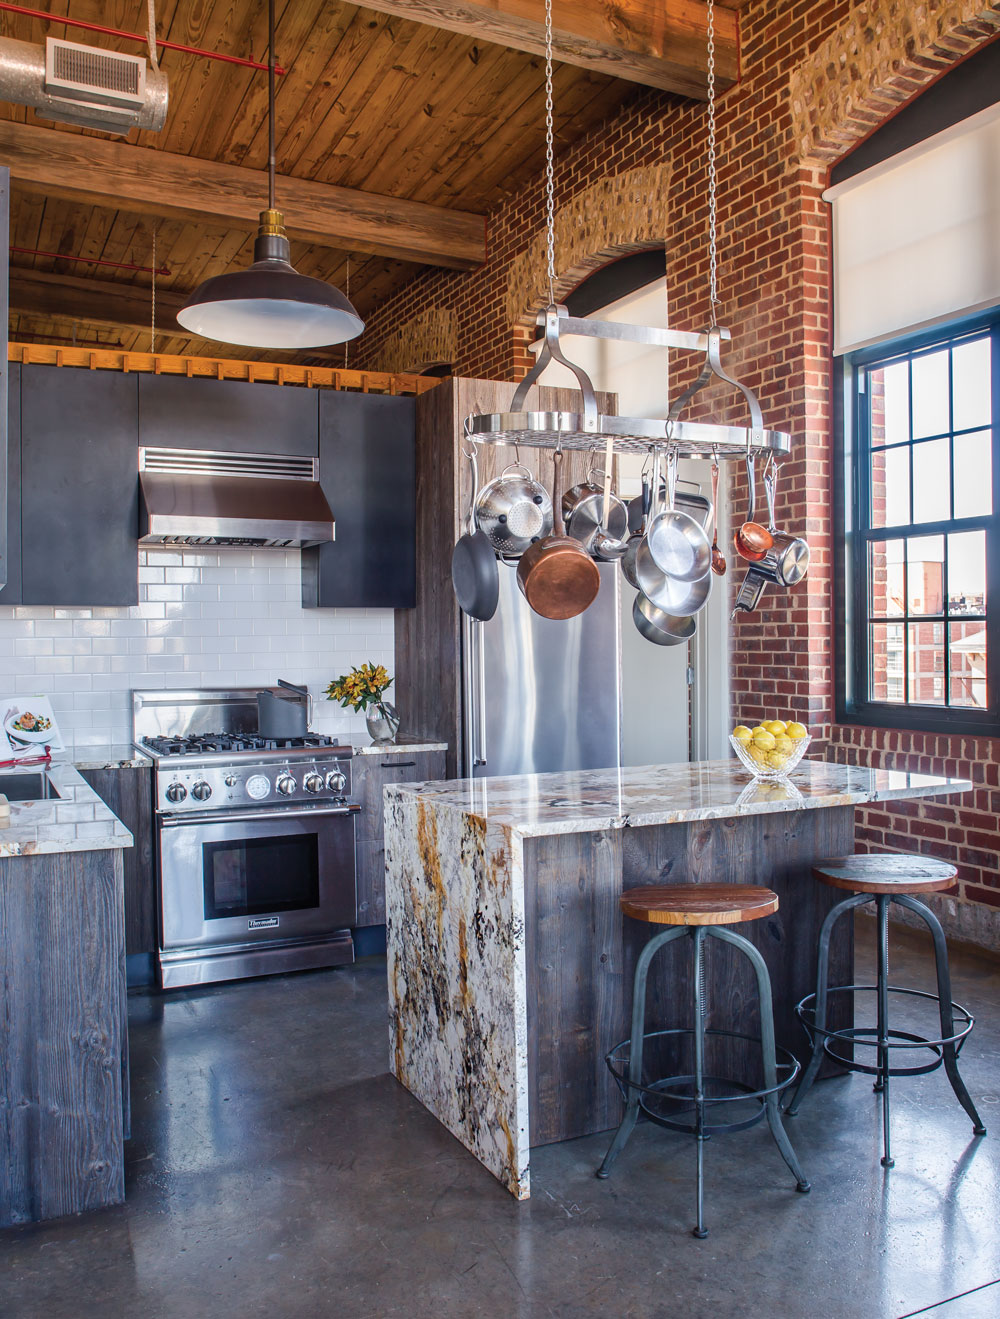 Room Envy A Kitchen In The Cotton Mill Lofts Marries Modern Furnishings With Historical Bones